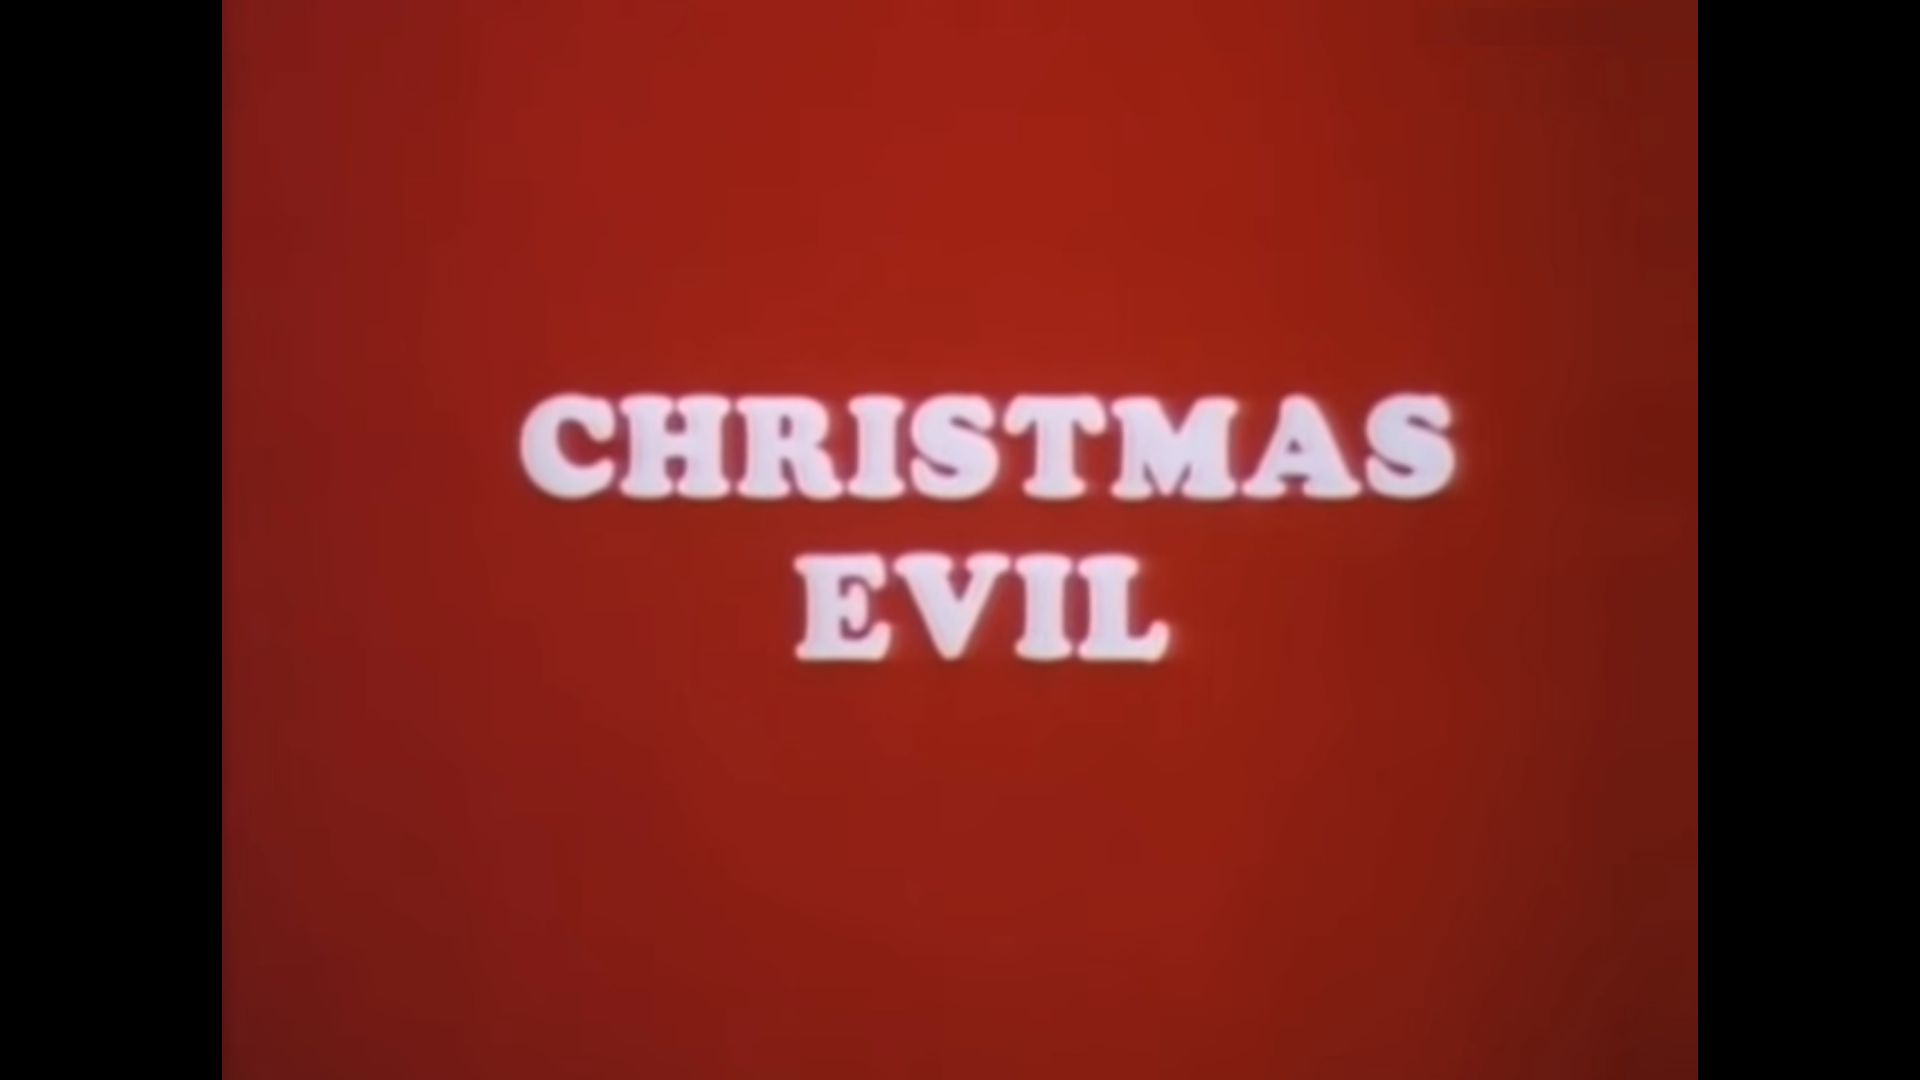 Christmas Evil 1980.Wicked Wednesday Christmas Evil You Better Watch Out 1980